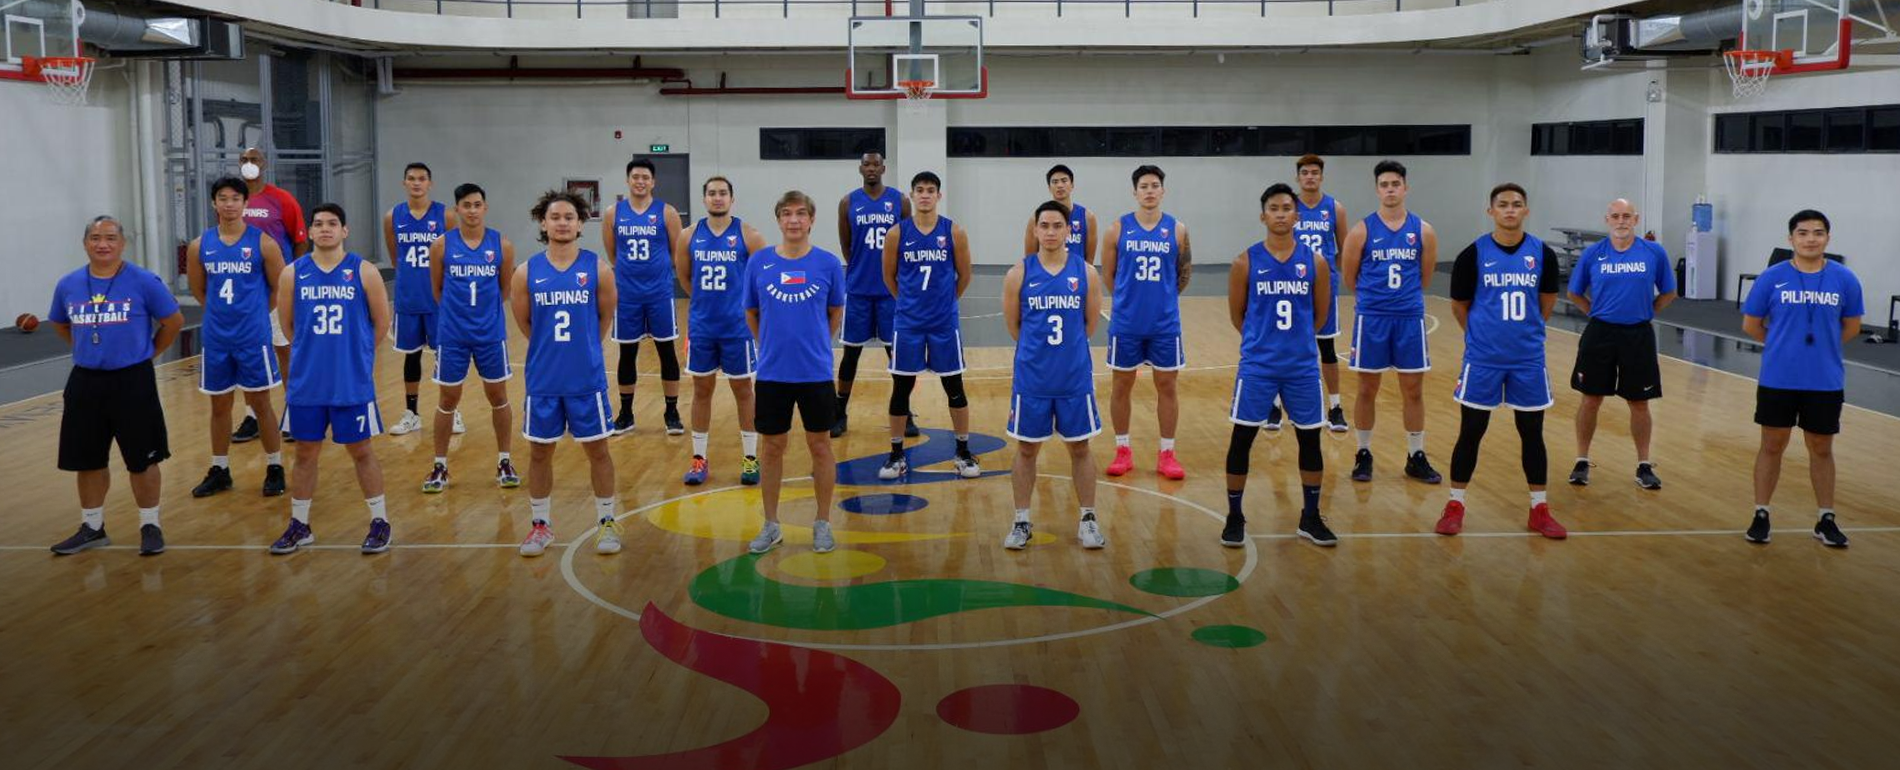 PLDT, Smart power Gilas Pilipinas in FIBA Asia Cup 2021 Qualifiers tournament